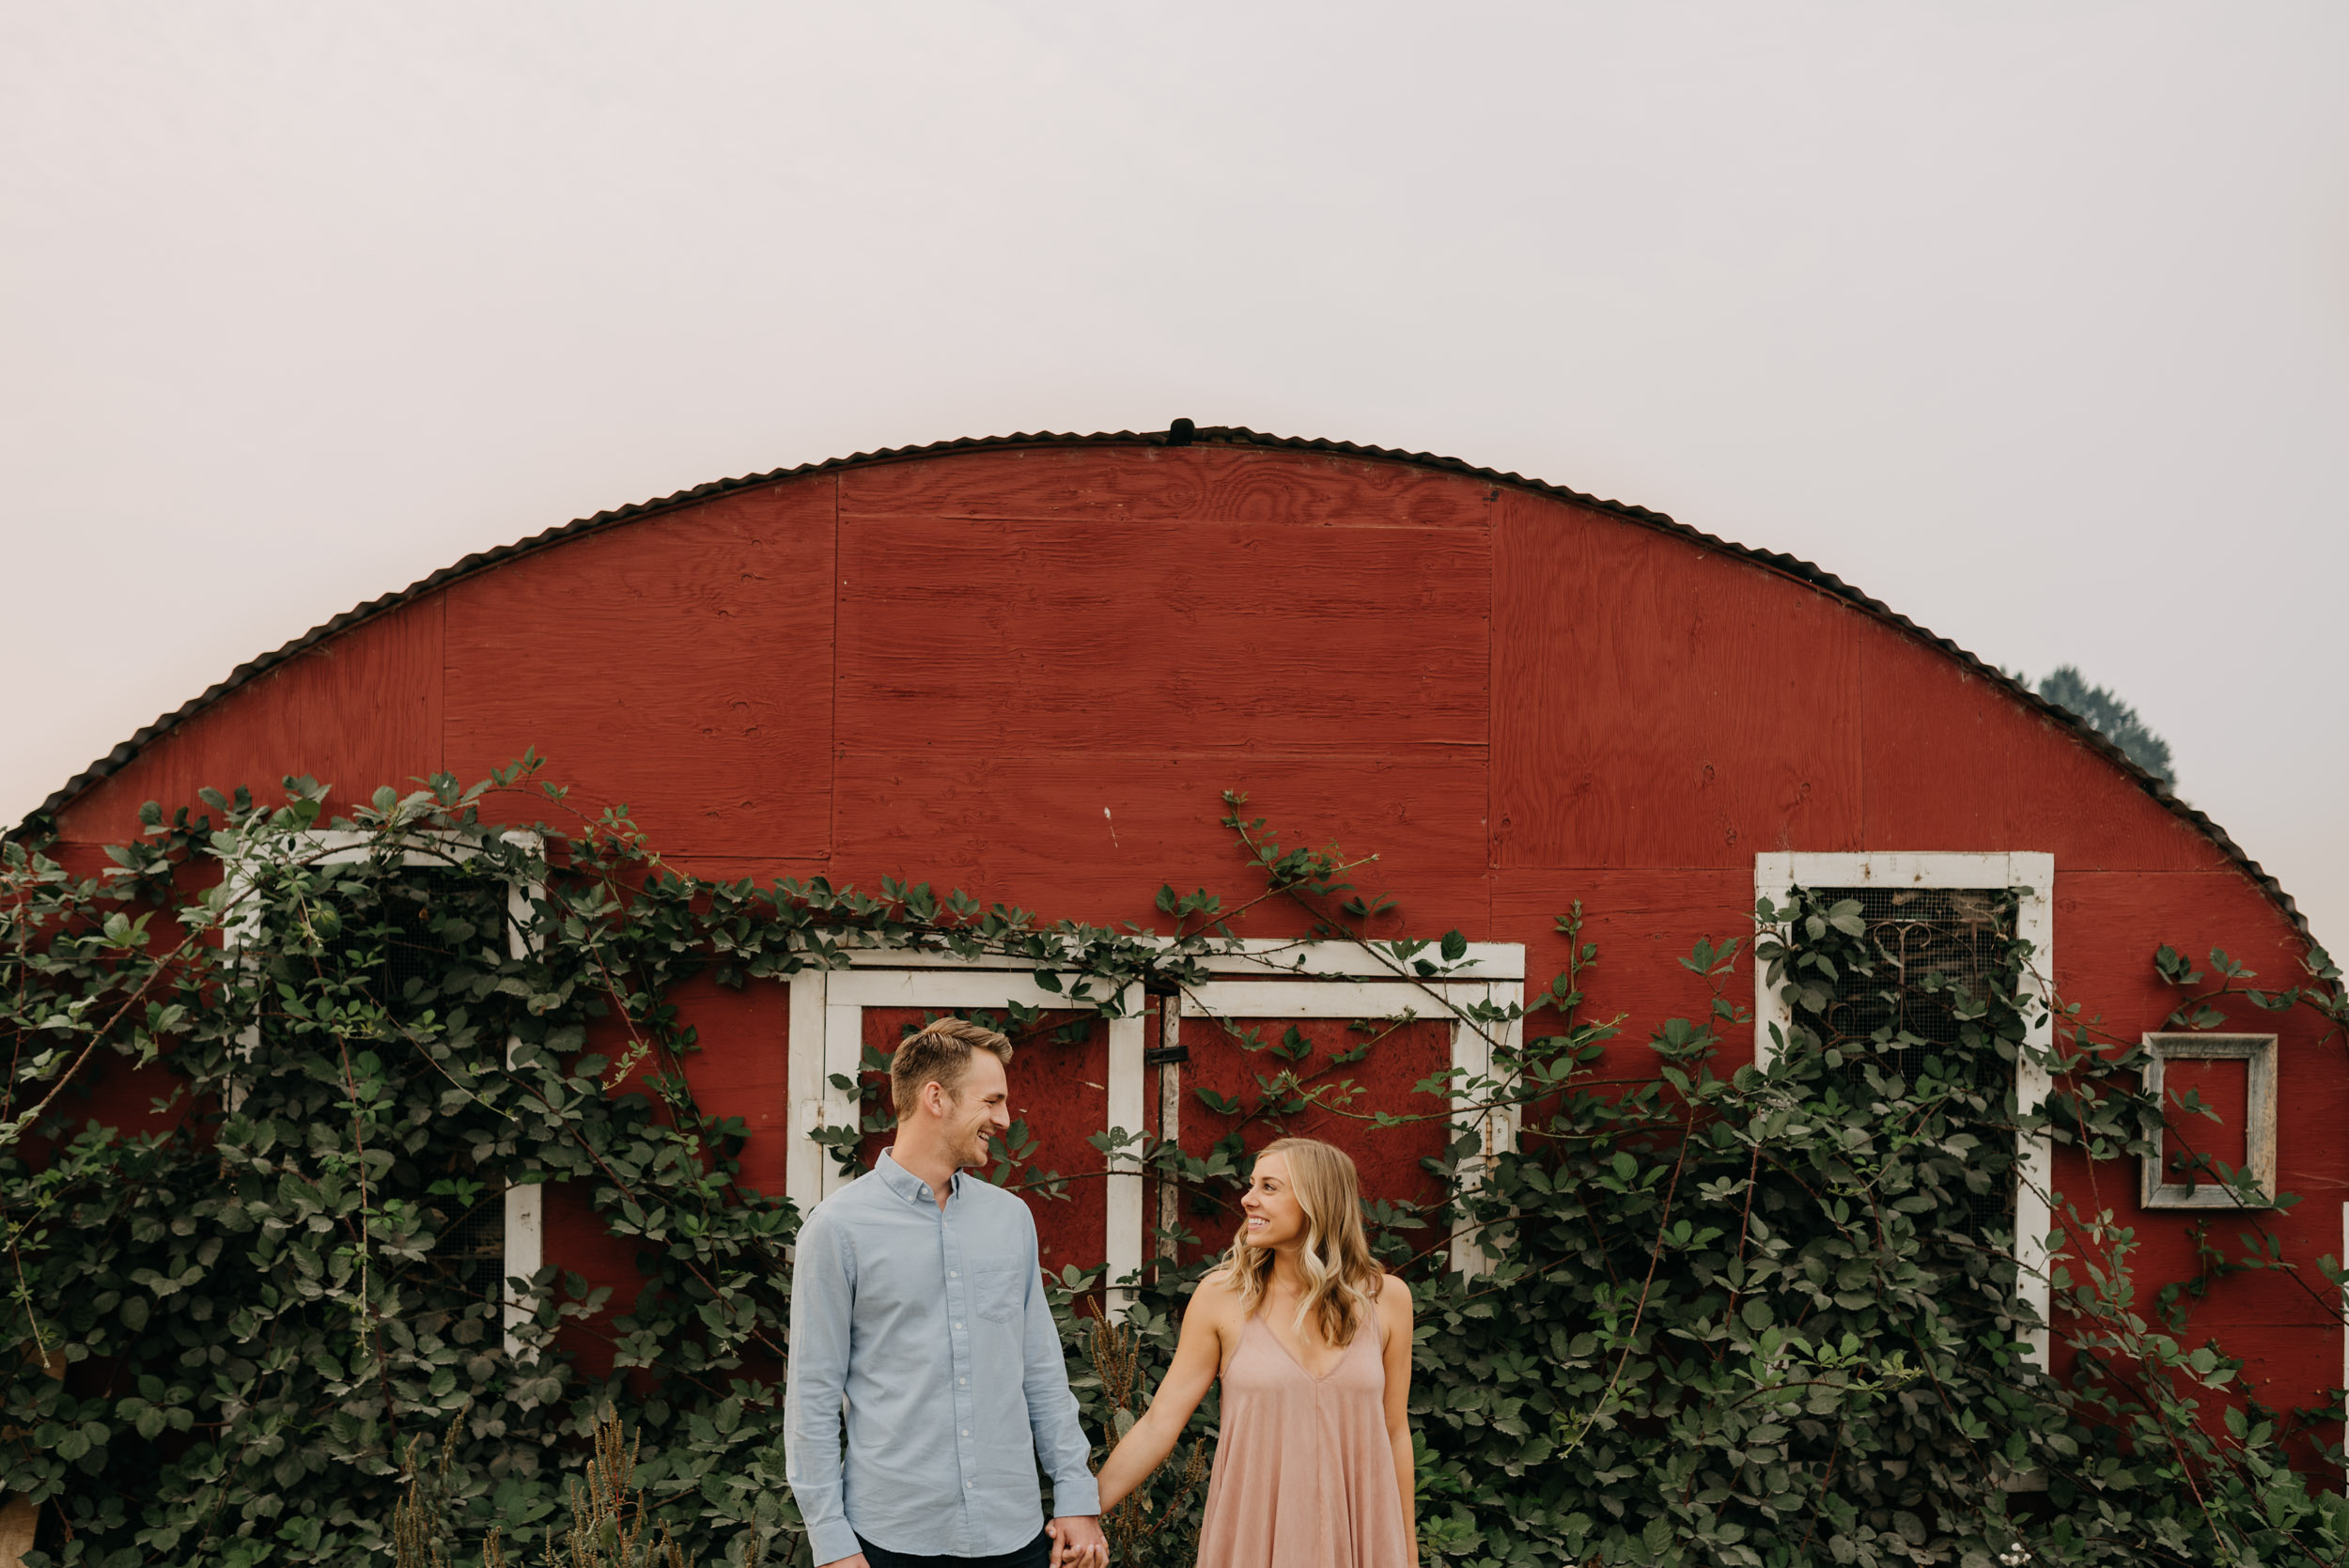 Oregon-Red-Barn-Door-Engagement-Sauvie-3393.jpg